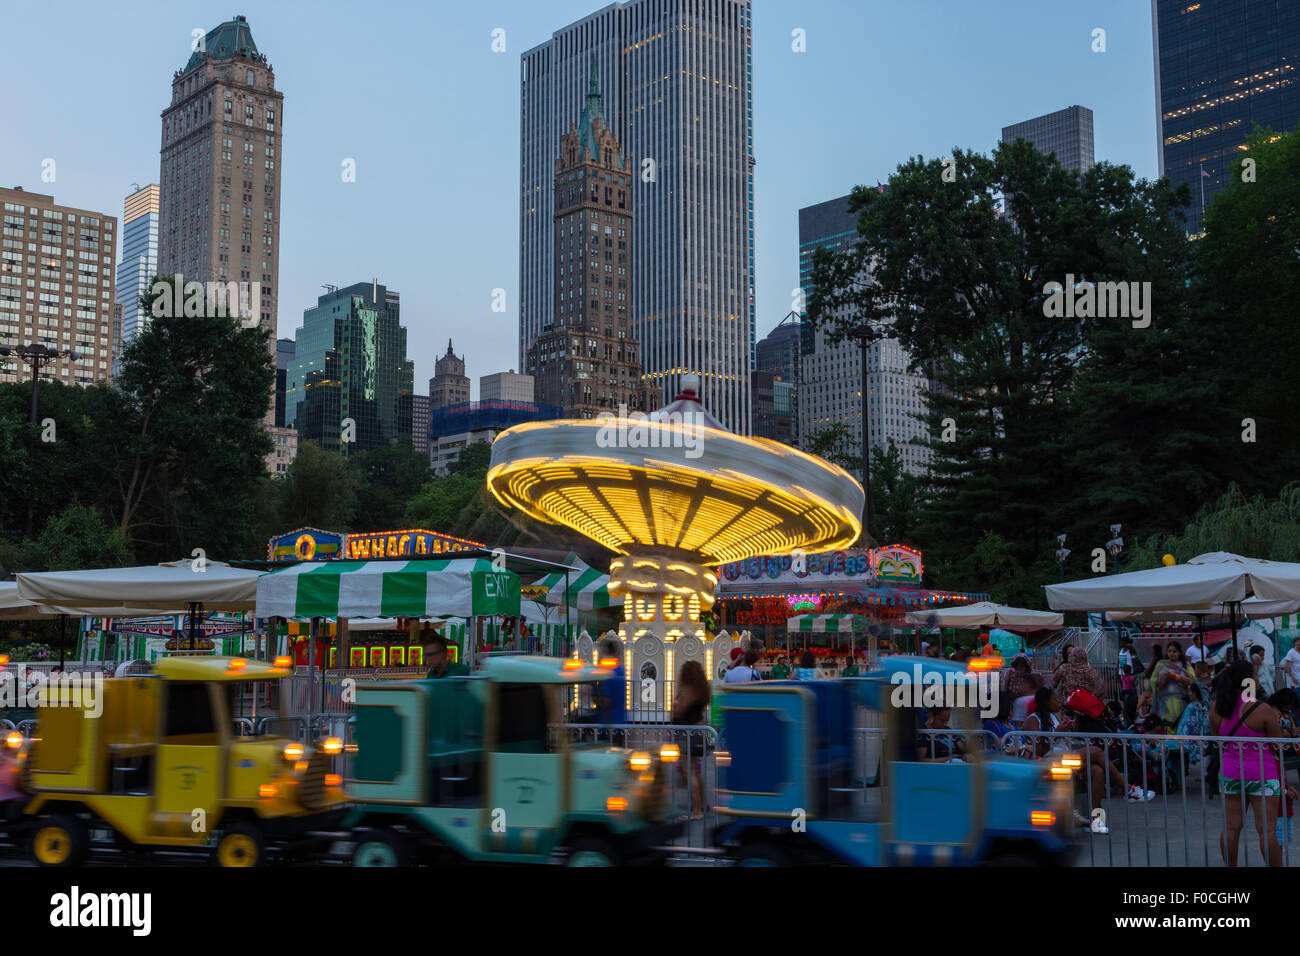 Merveilleux Victorian Gardens, Carnival Rides In Central Park With Skyline In  Background, NYC